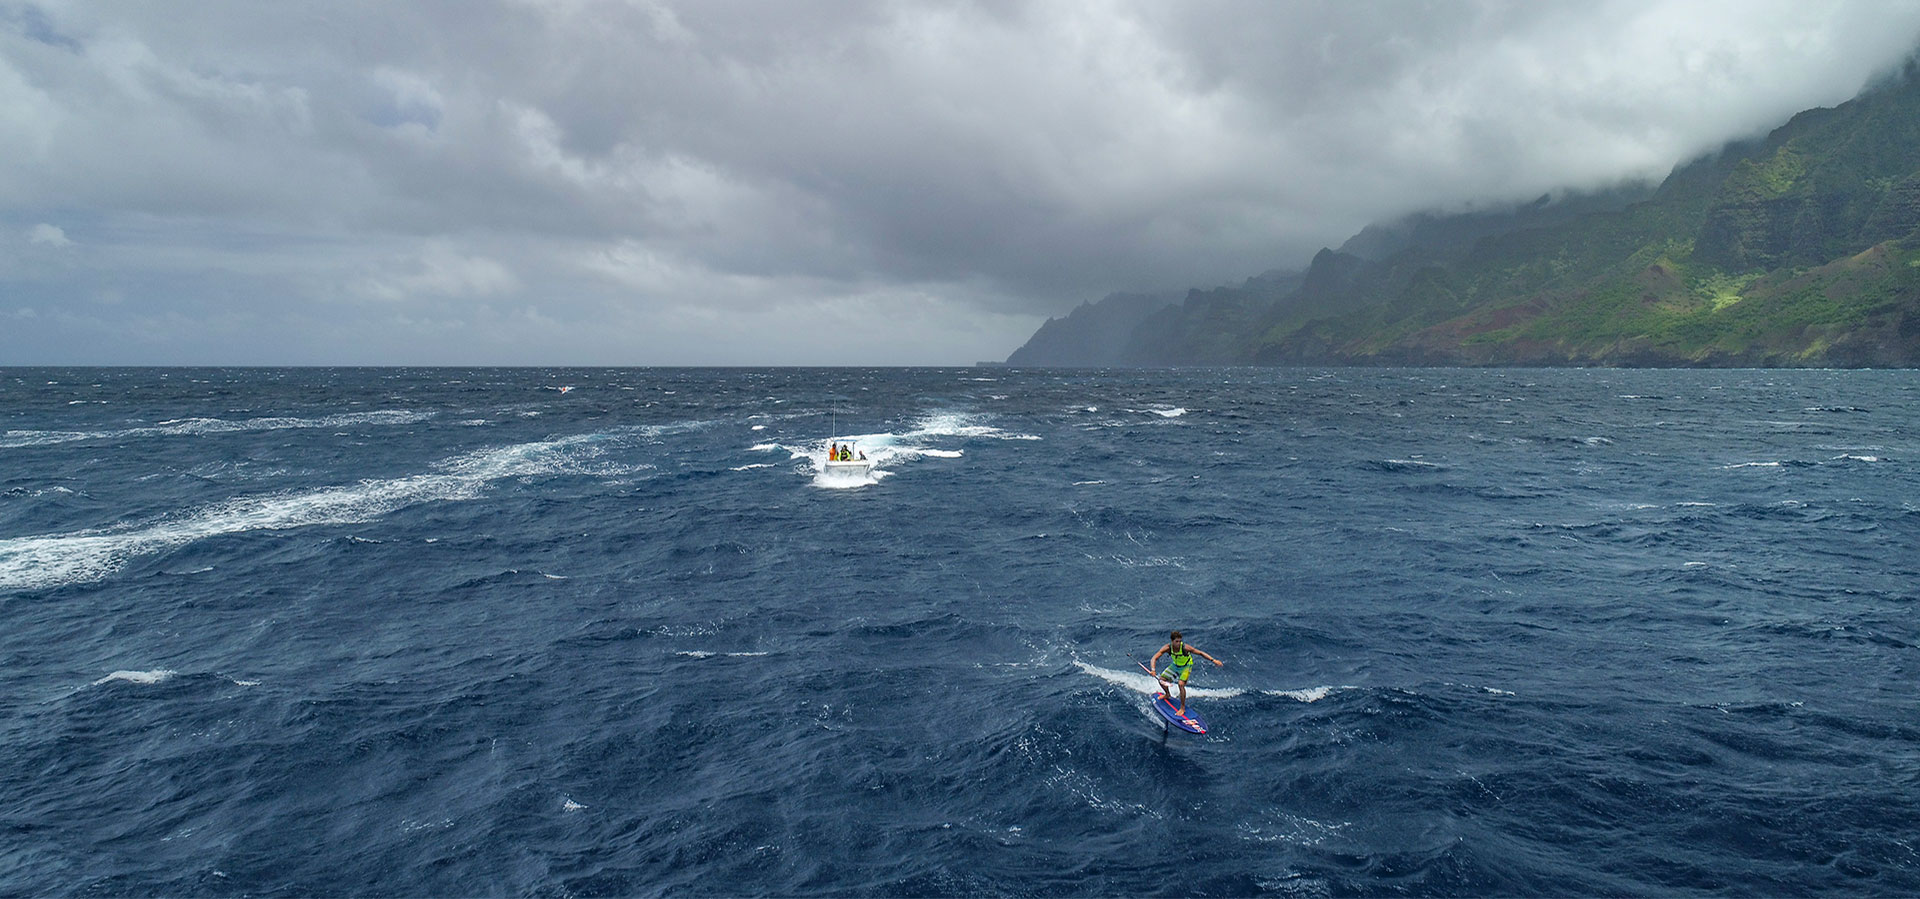 Celebrating 10 years of Na Pali Race